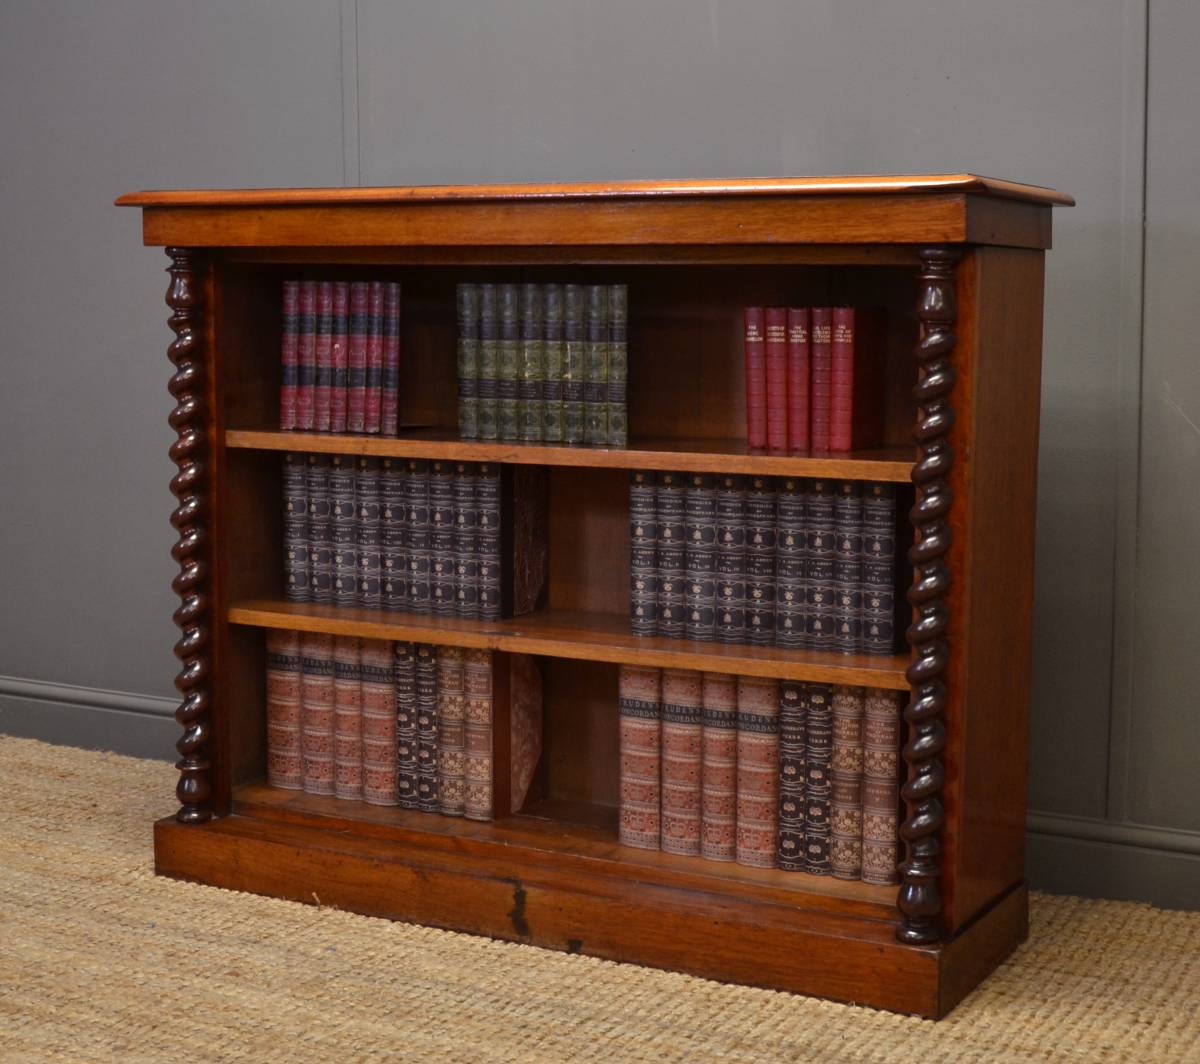 Victorian Mahogany Antique Open Bookcase with Barley Twist Columns.